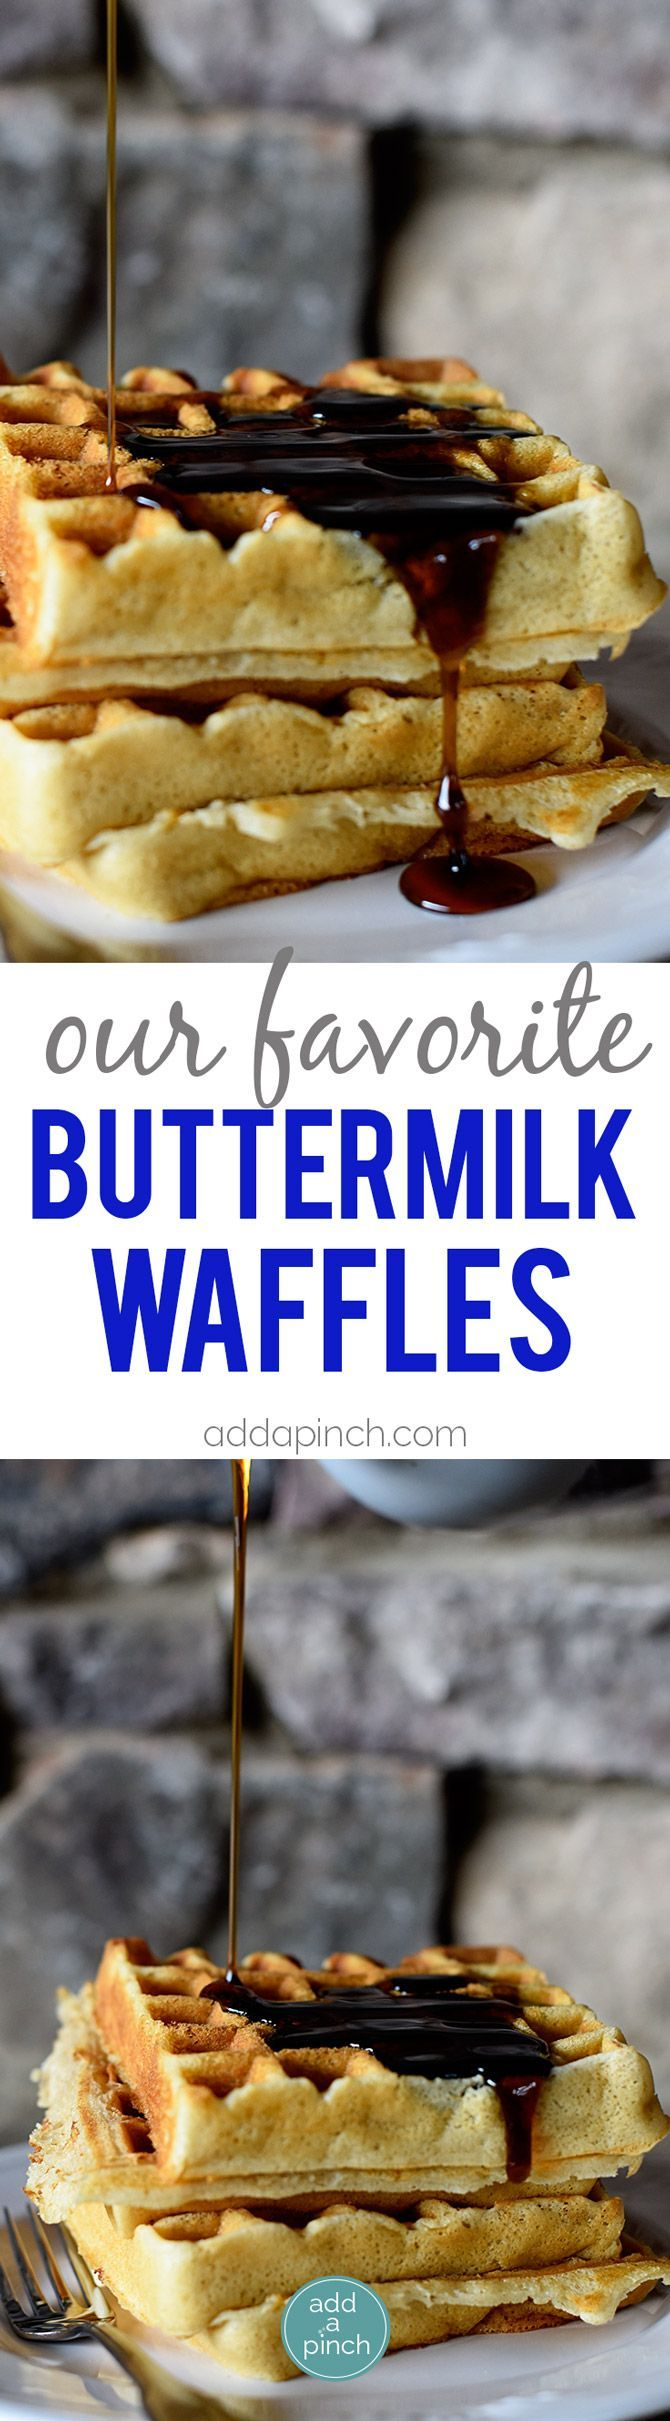 Our Favorite Buttermilk Waffles Recipe - Our favorite buttermilk waffles are crisp on the outside, yet tender and fluffy on the inside. This is the buttermilk waffle recipe I turn to again and again! // addapinch.com